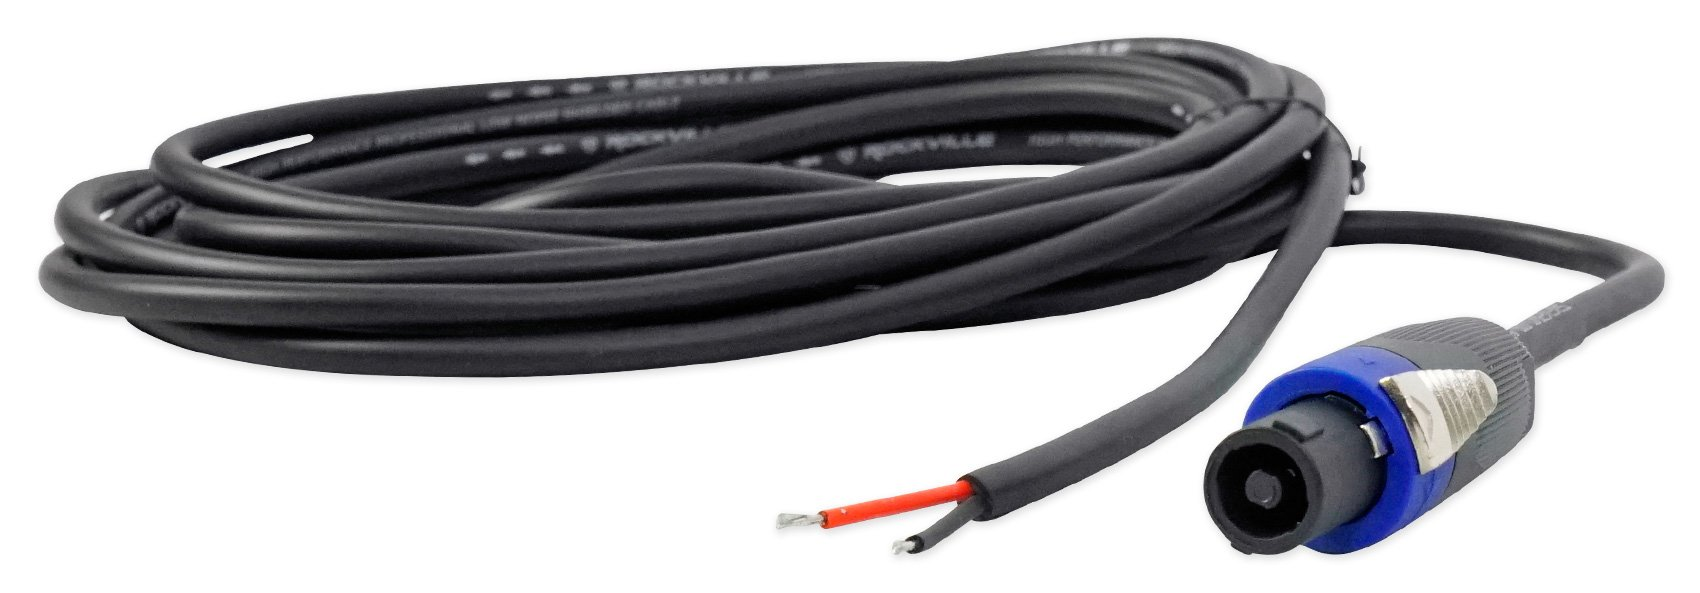 Rockville RHC15 15 Foot Speakon to Bare Wire Speaker Cable,16 Gauge,100% Copper by Rockville